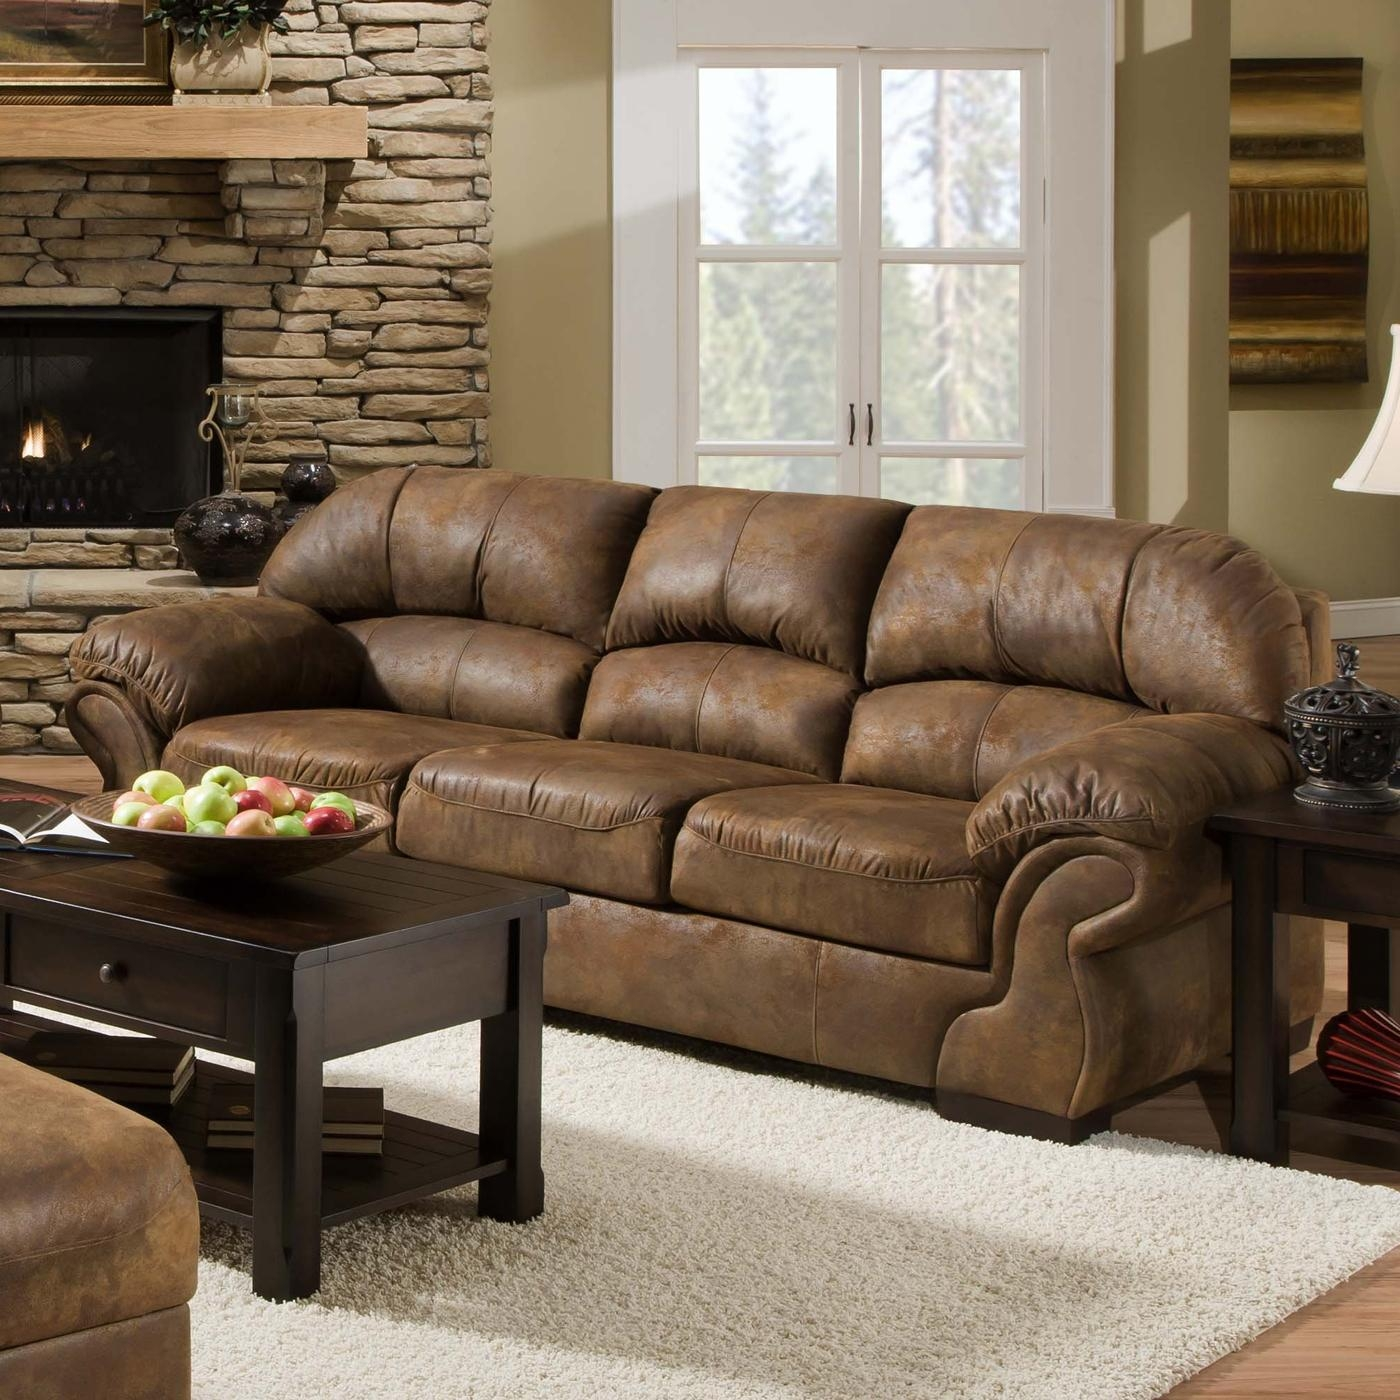 Furniture: Using Comfy Simmons Sleeper Sofa For Home Furniture Inside Simmons Sleeper Sofas (Image 5 of 20)